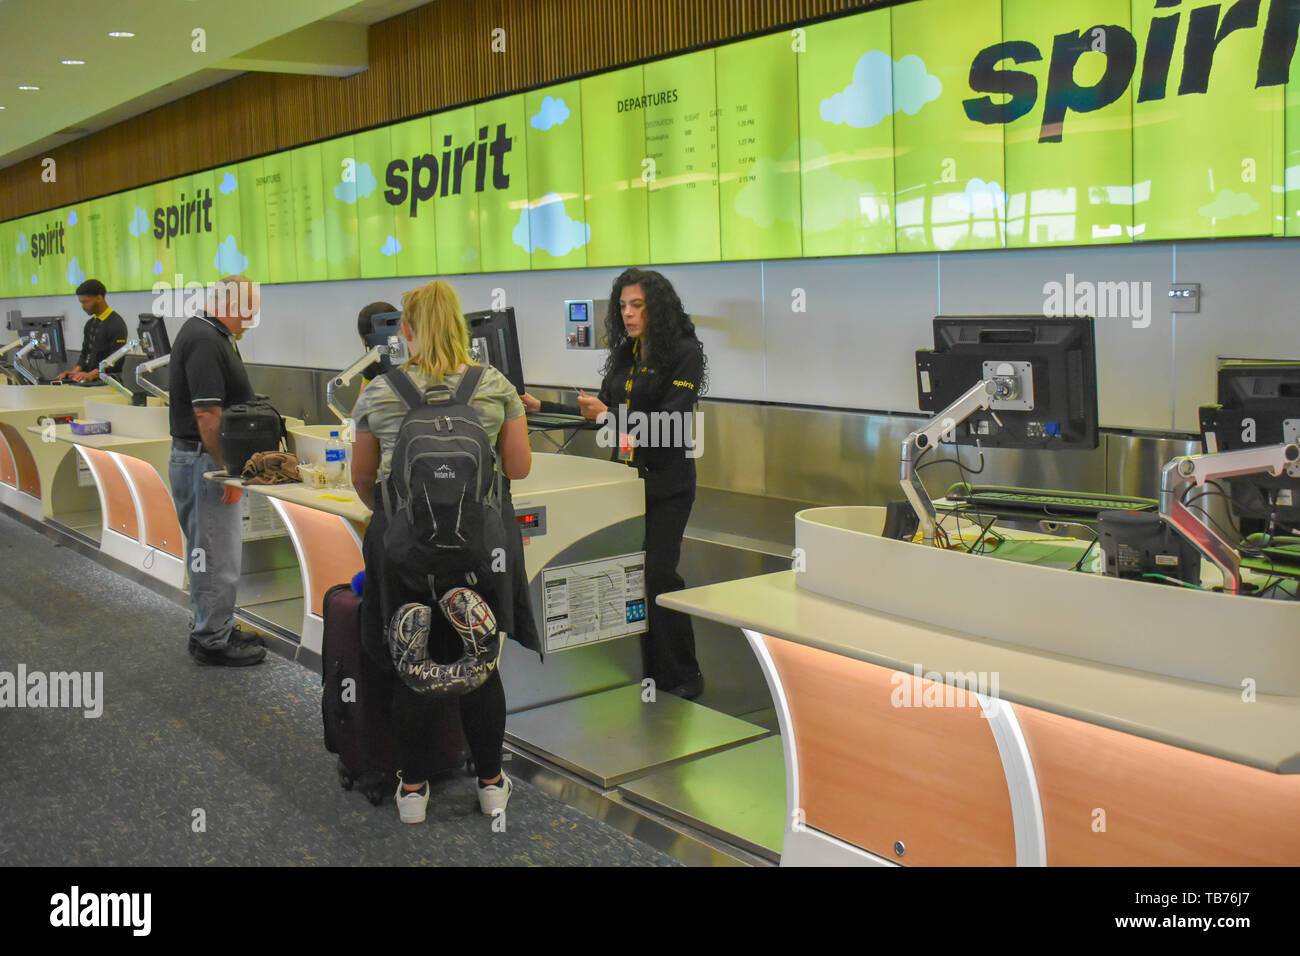 Orlando, Florida.  March 01, 2019. People doing check-in at Spirit Airlines counter in Orlando International Airport . - Stock Image